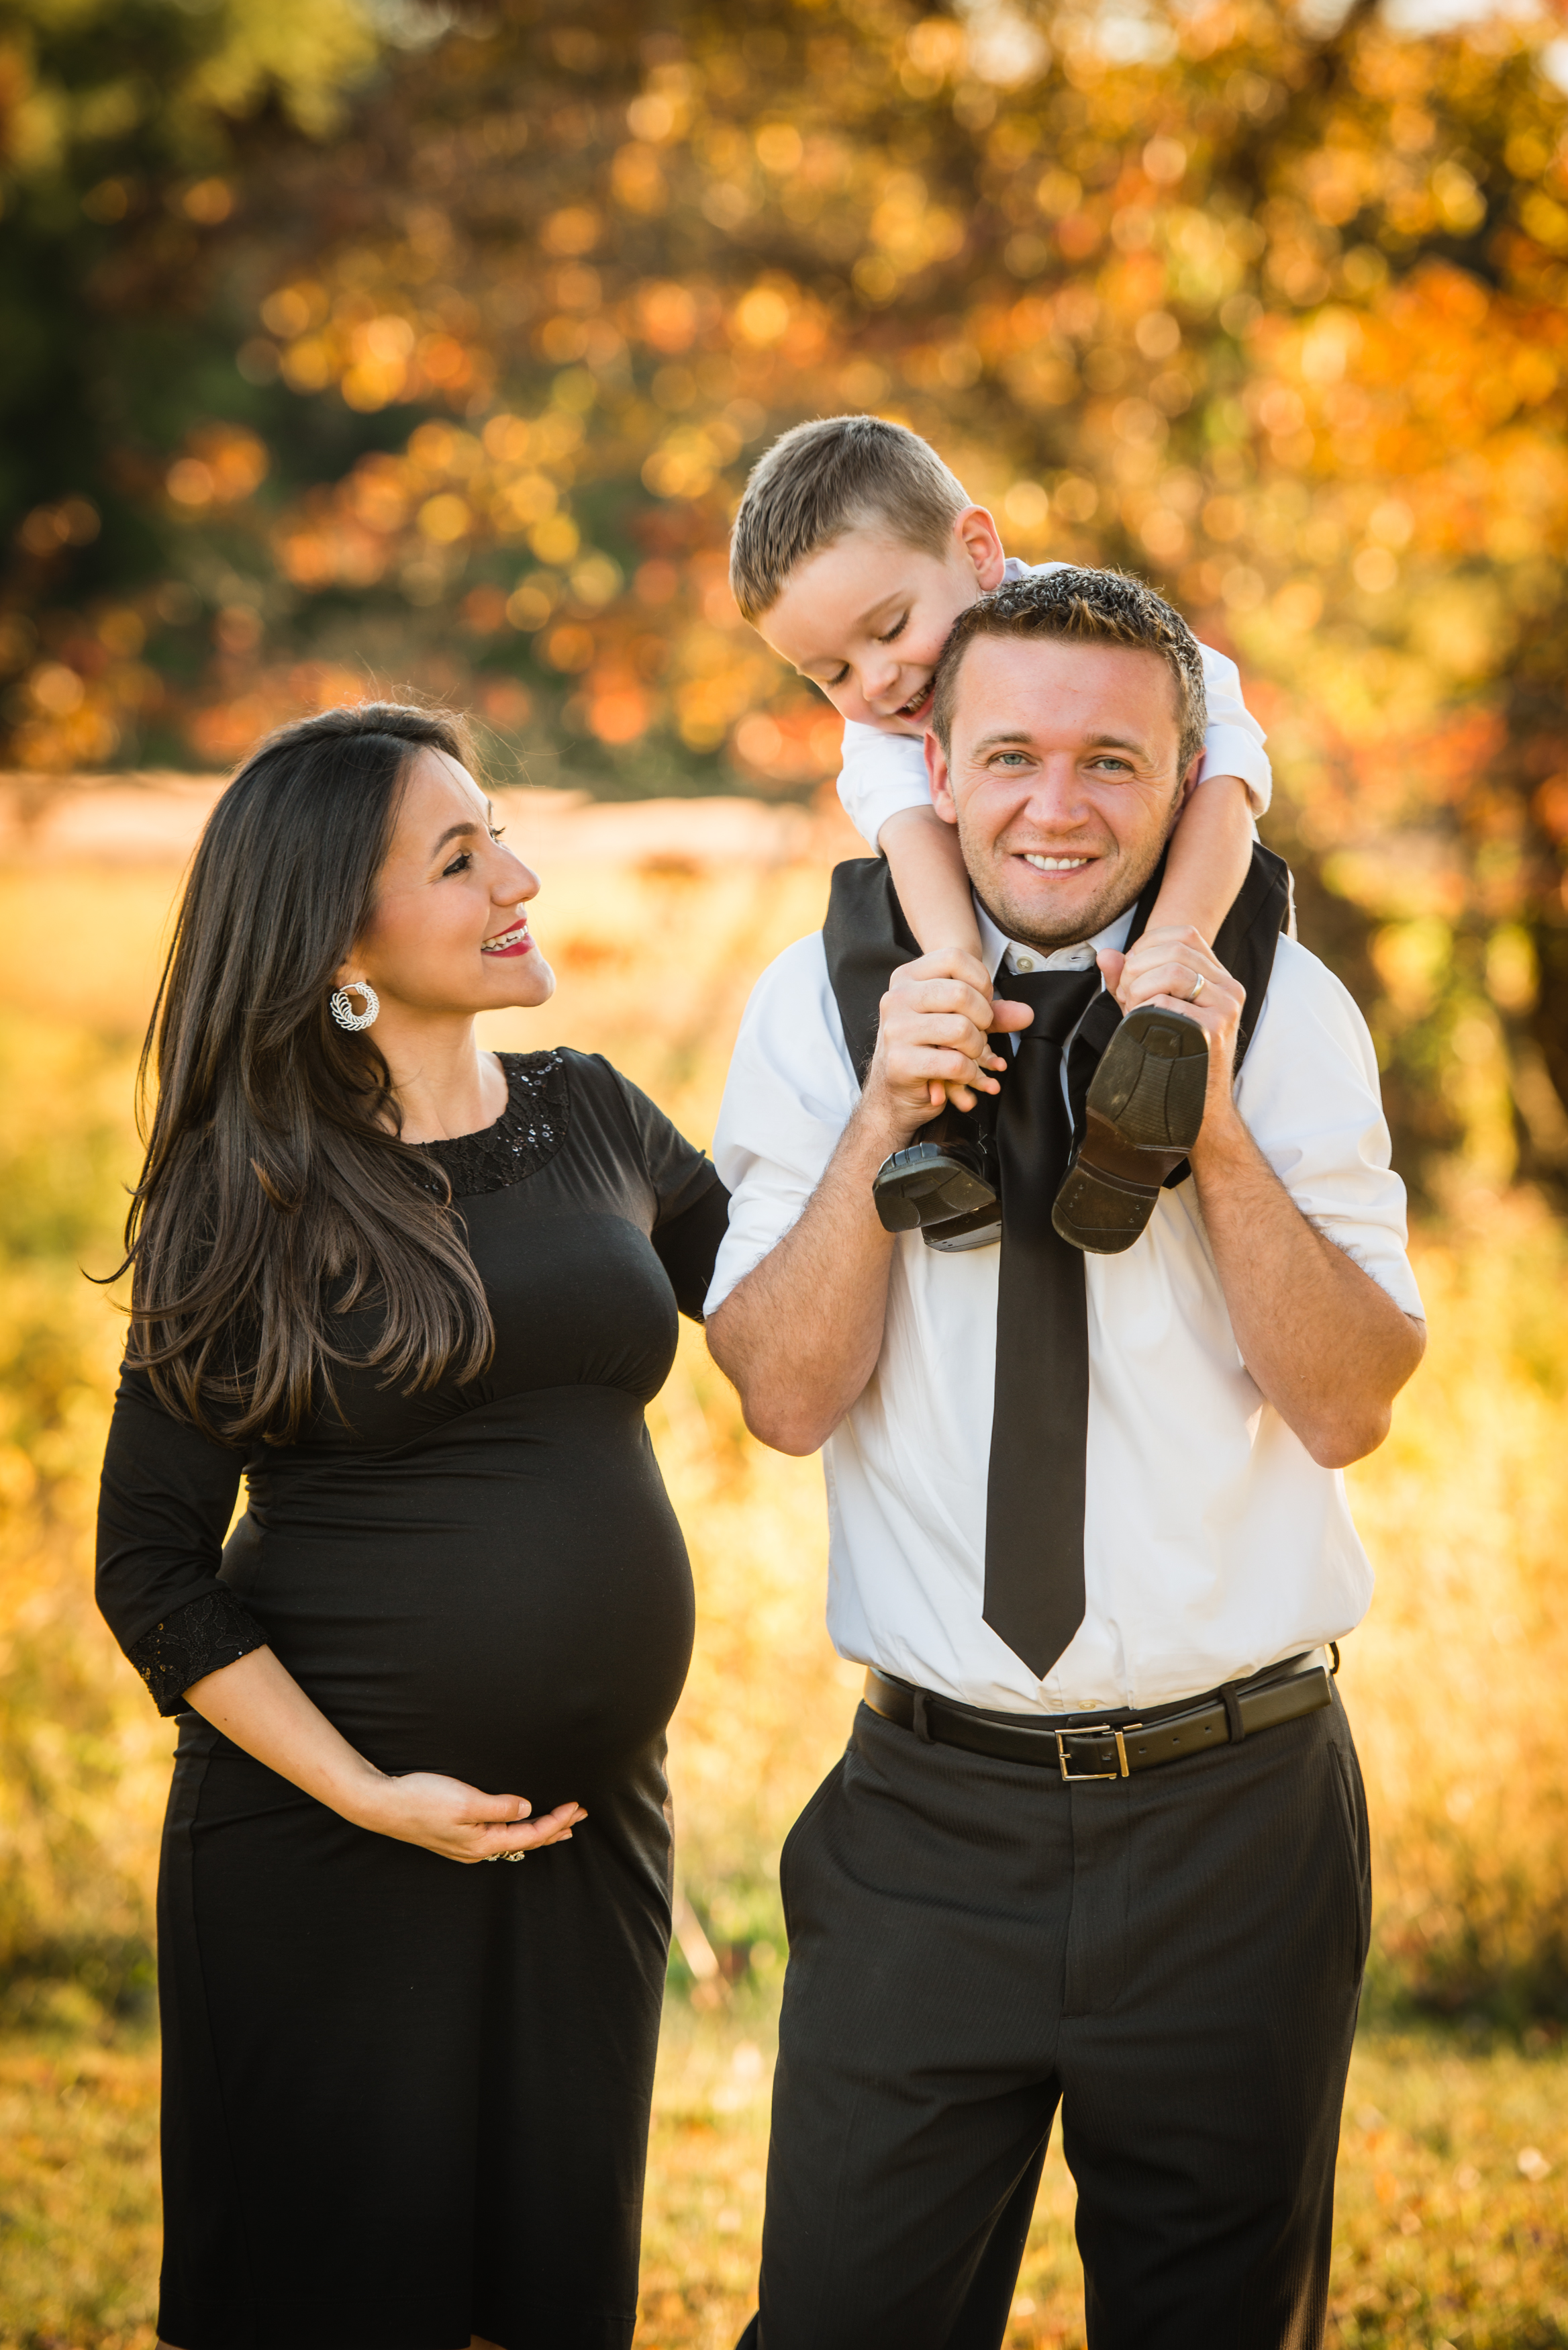 Inessa-Family-Shoot-Oct-2015-80.jpg